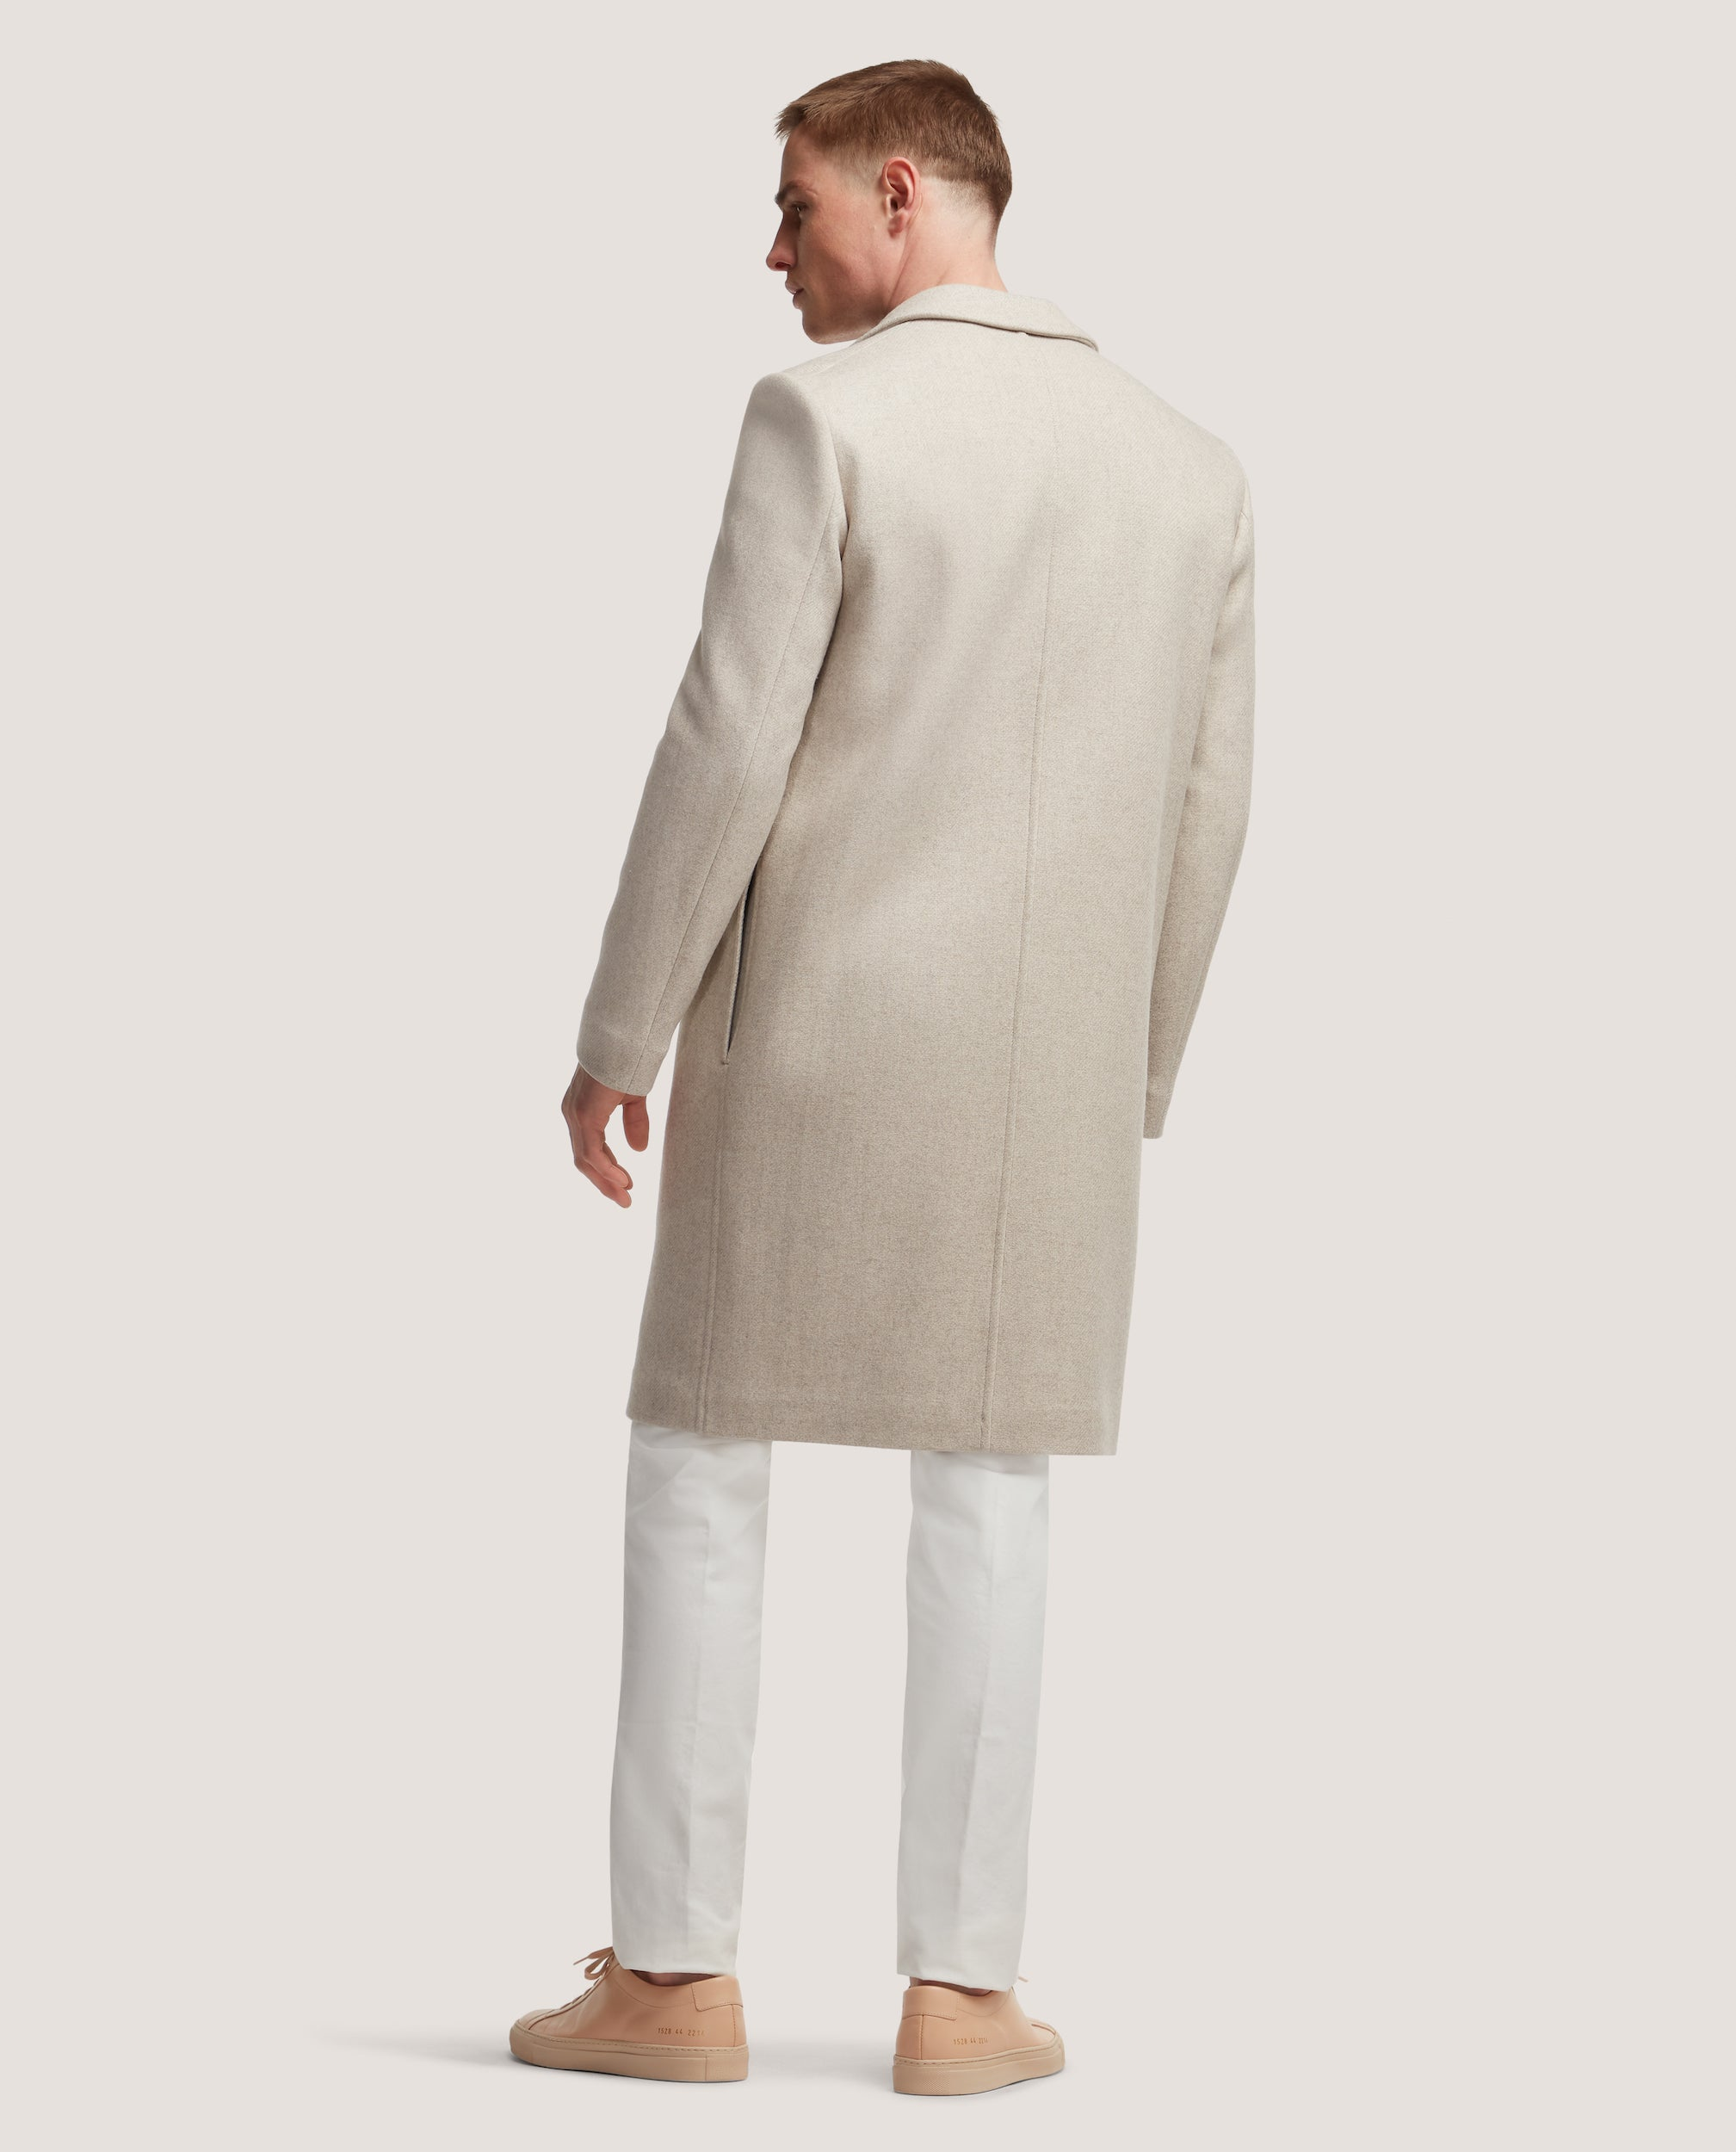 CONAN Oversized wool overcoat